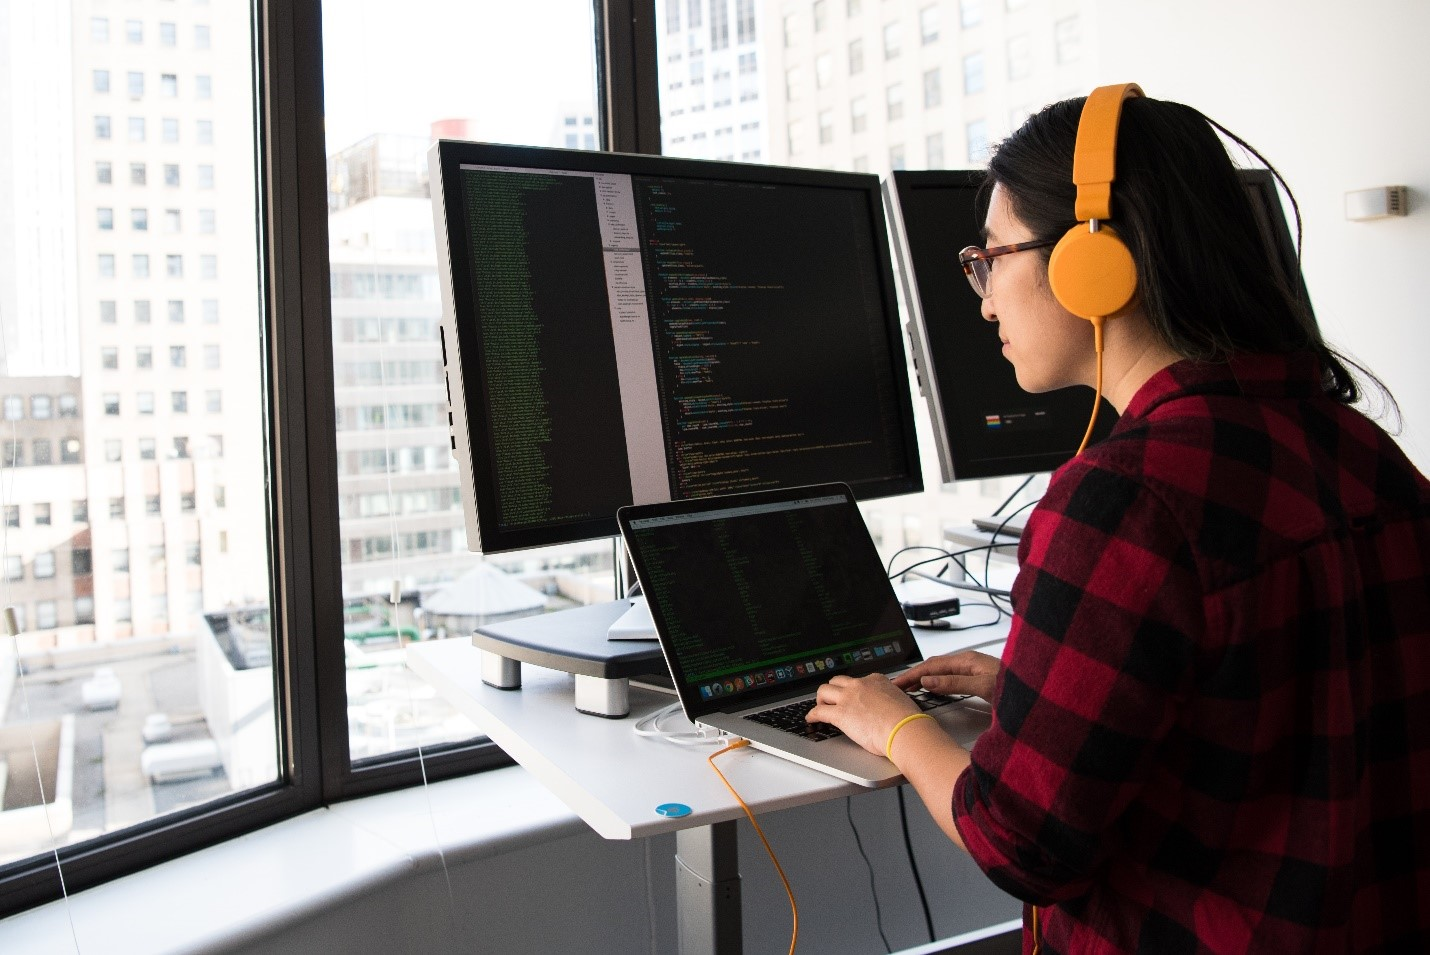 Offshore software development is a boom if you work with a good vendor